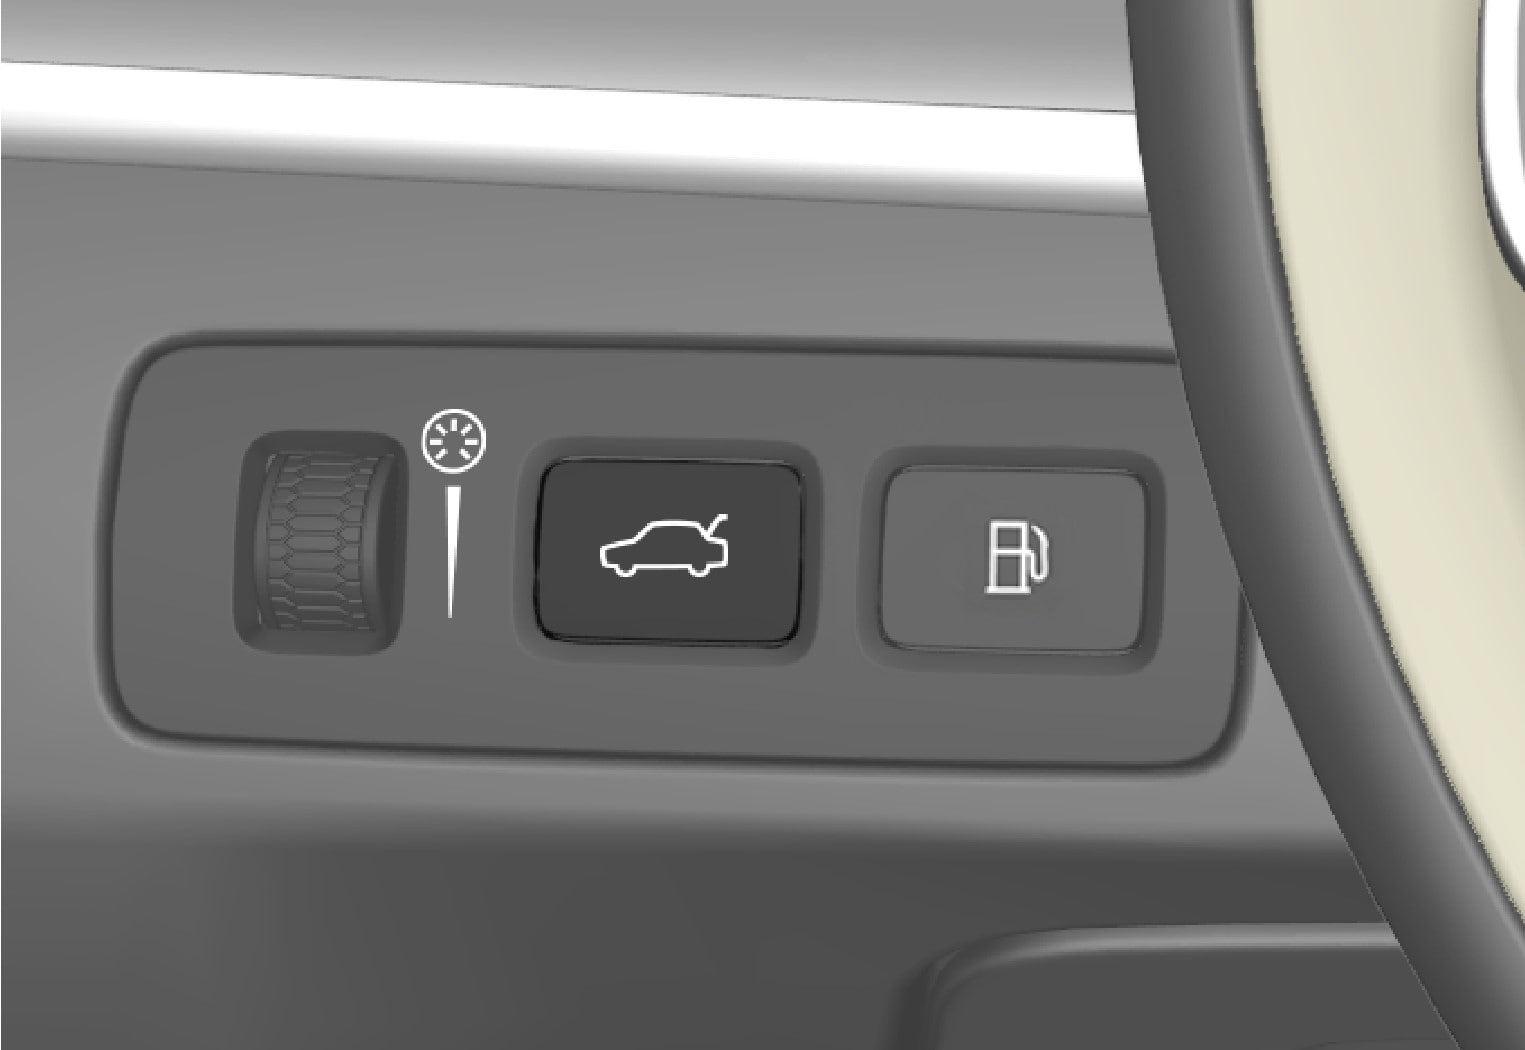 P5-1507 Unlock/open tailgate with button from inside (with fuel filler cap button)